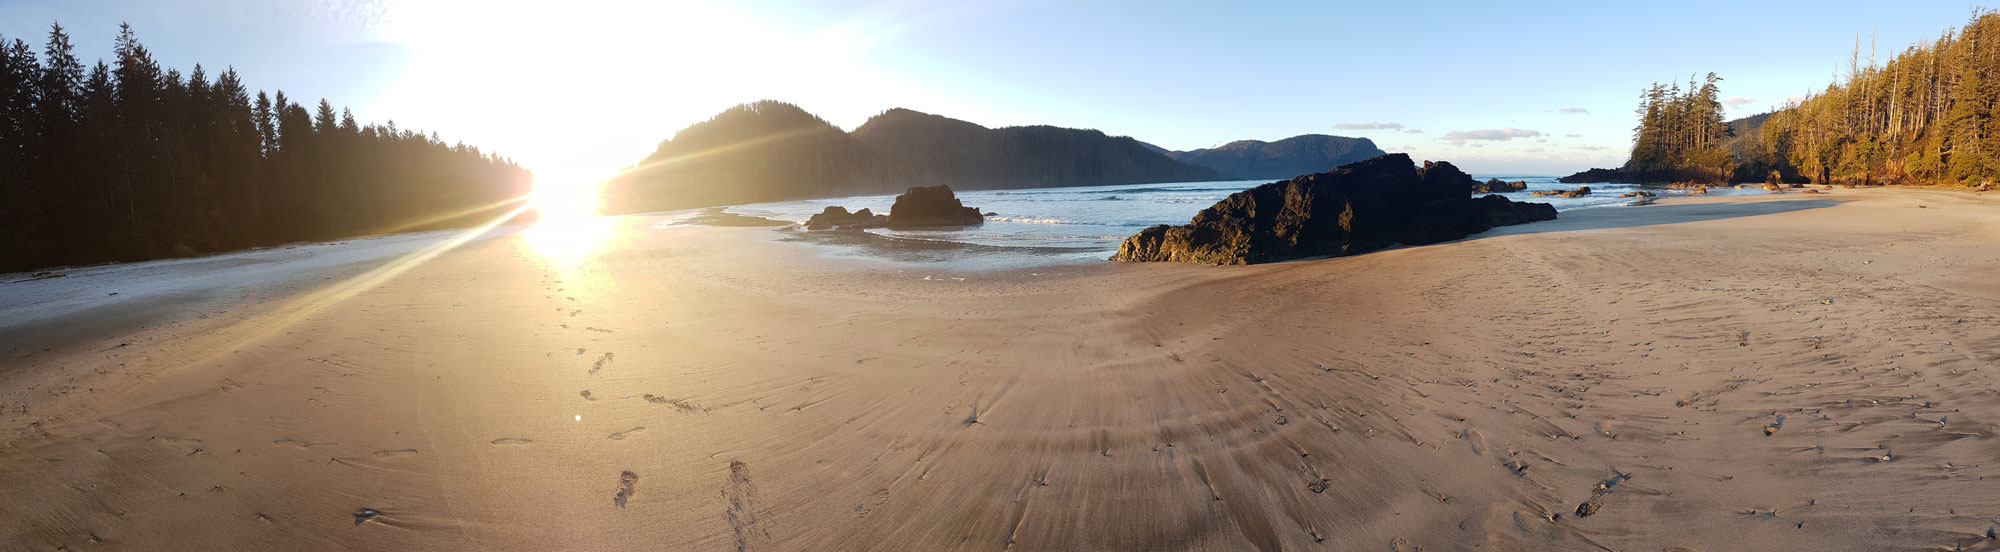 West Coast Canada beach at sunset